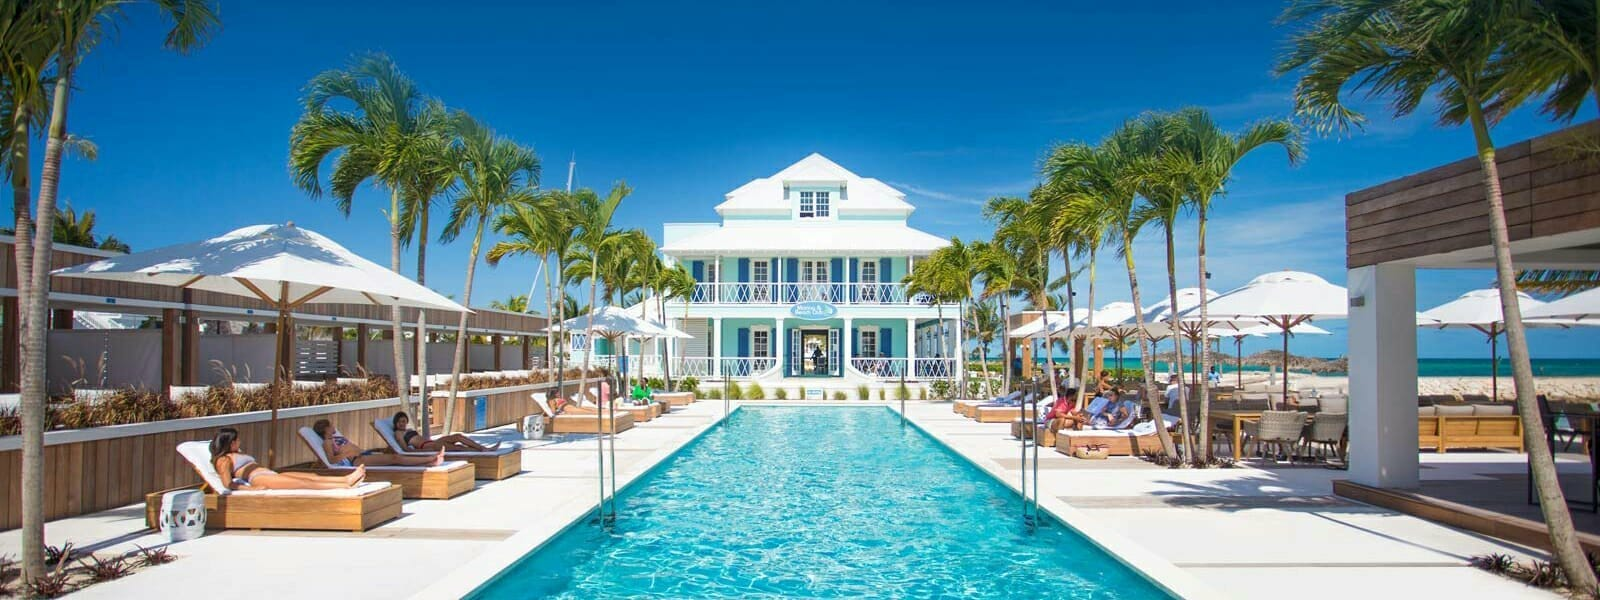 Palm Cay / One Marina | Homes in the Bahamas | Real Estate